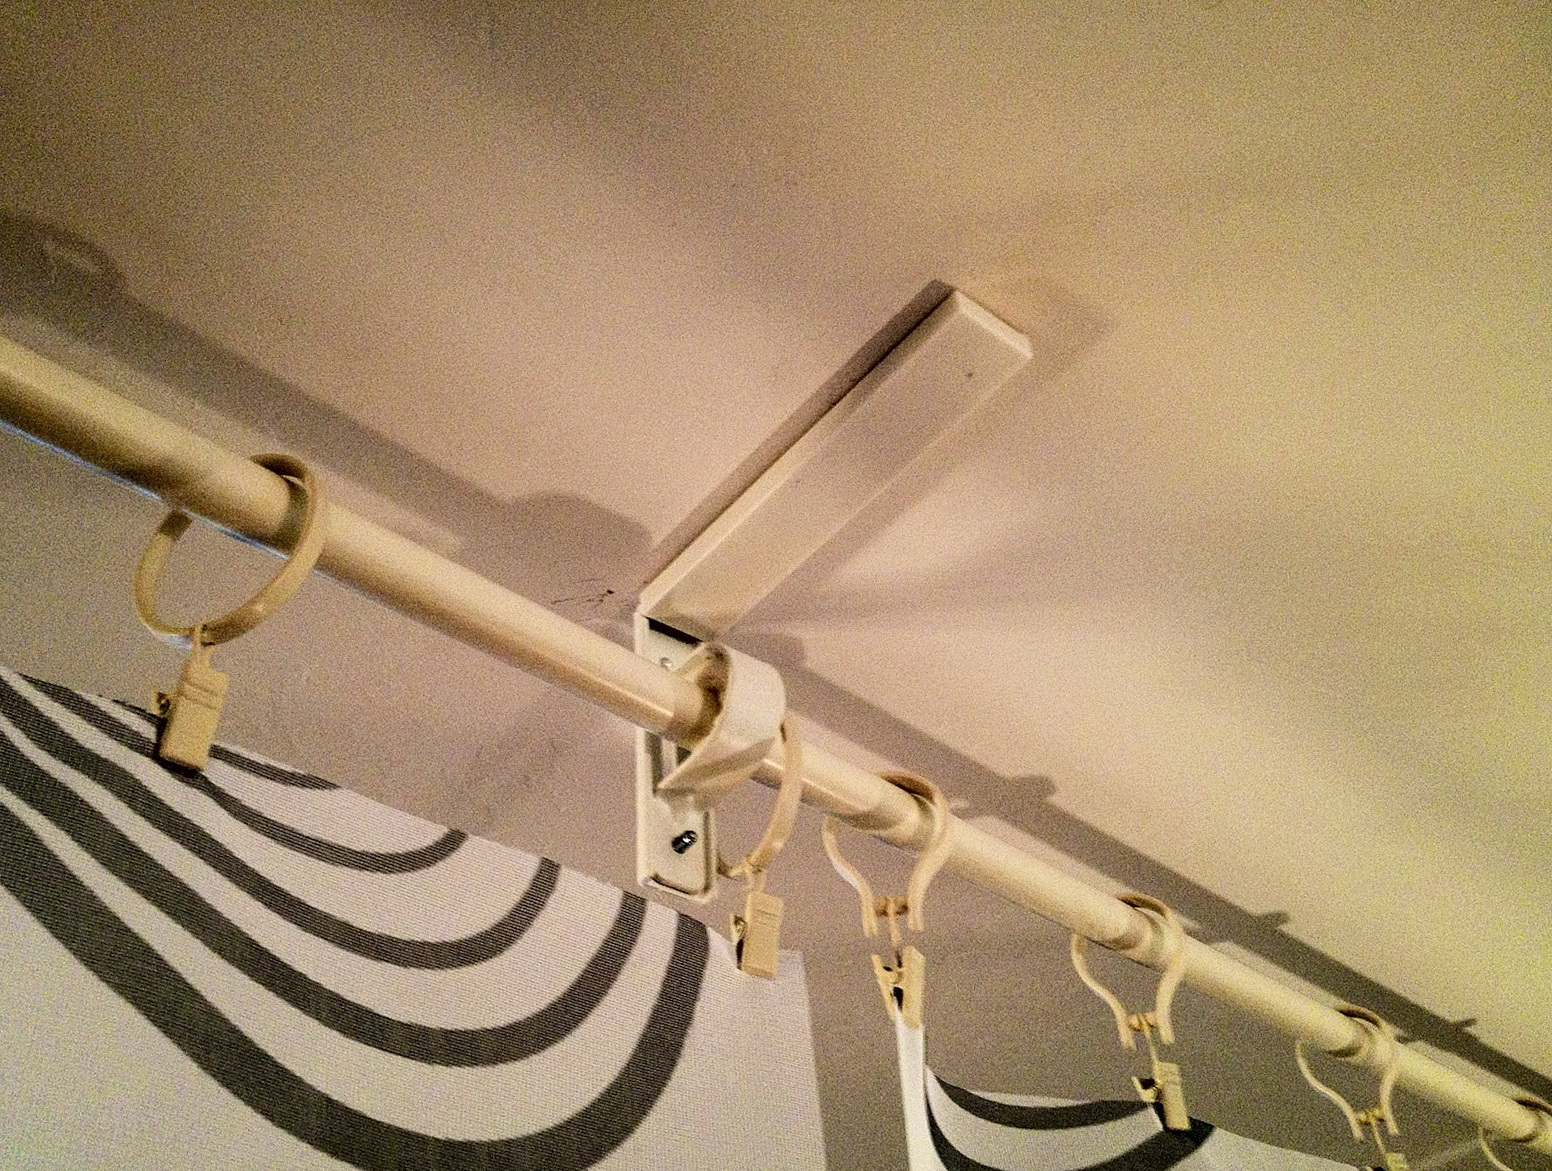 Curved Curtain Rod For Room Divider